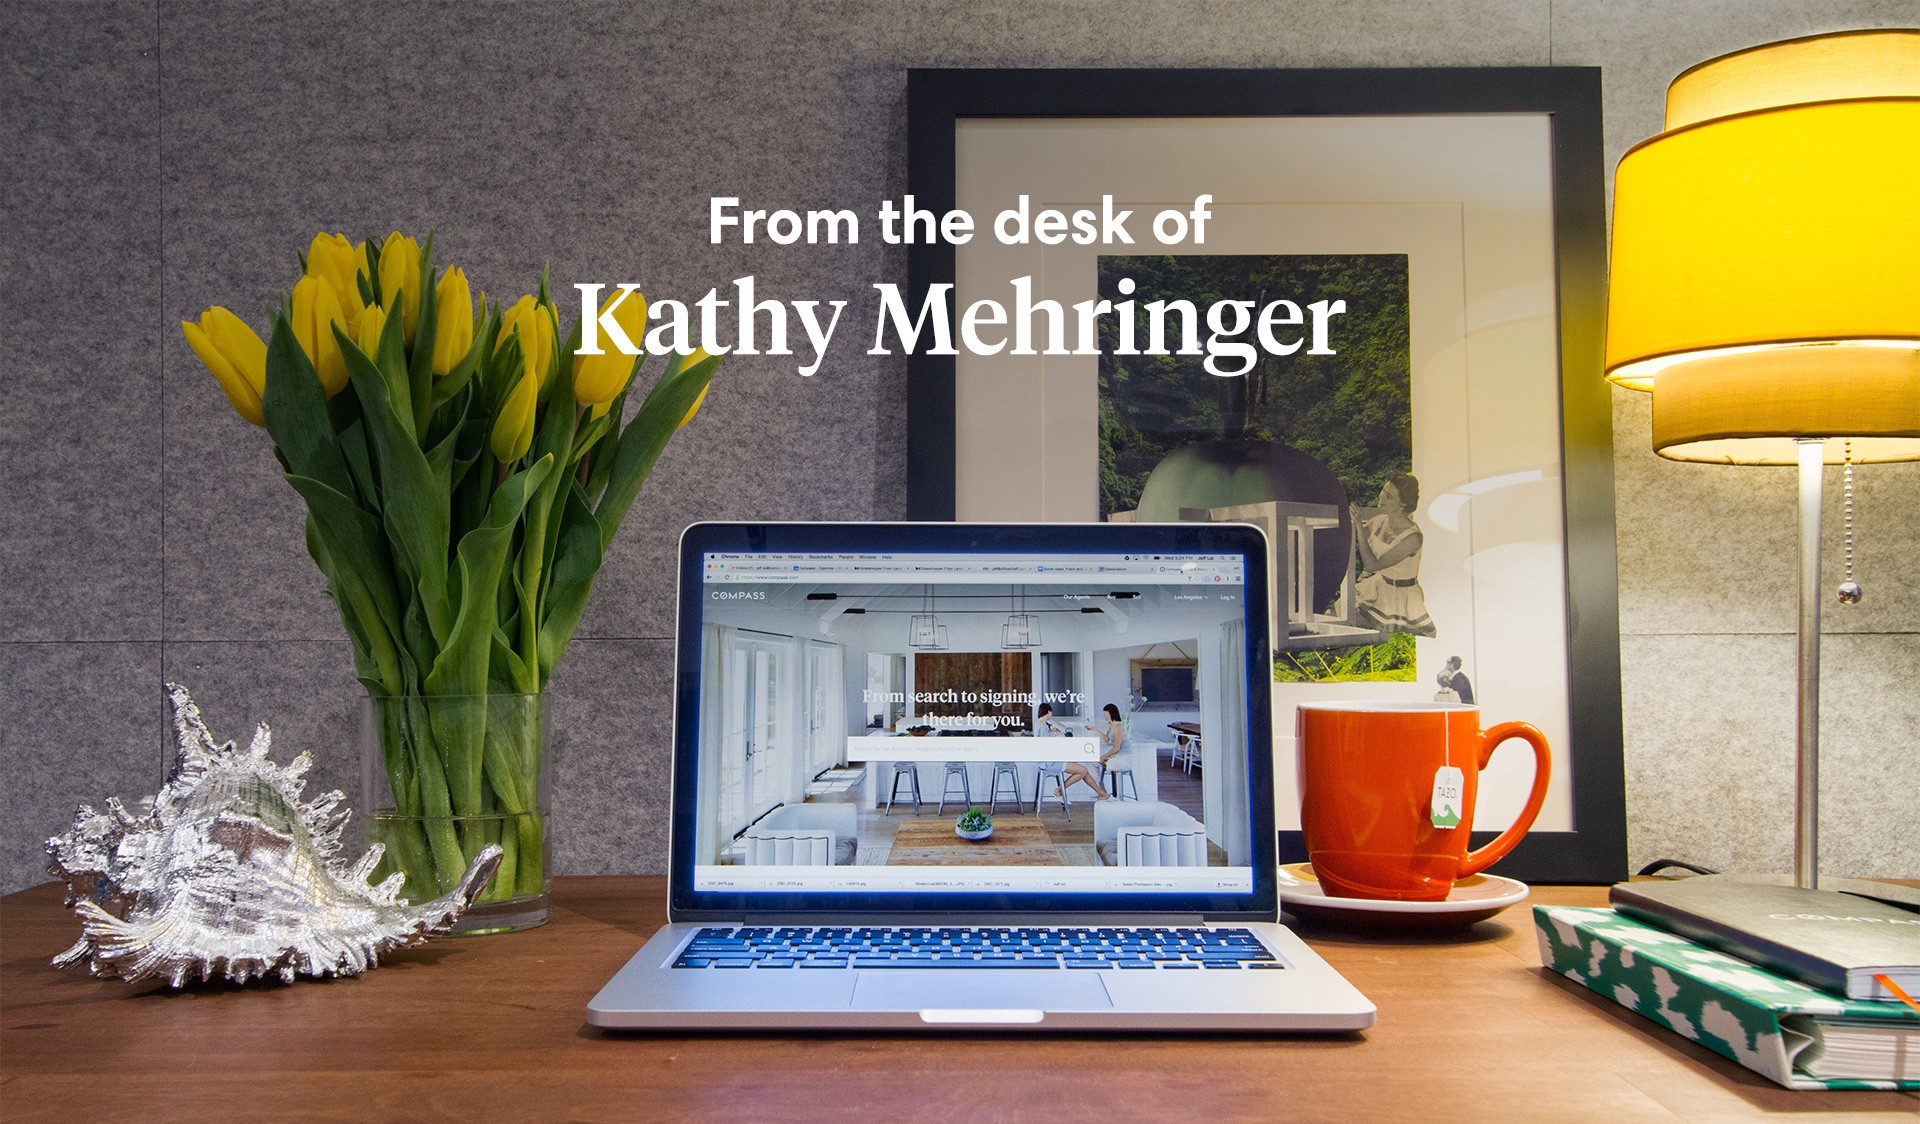 Ask kathy more questions about the ca residential purchase ask kathy more questions about the ca residential purchase agreement car platinumwayz